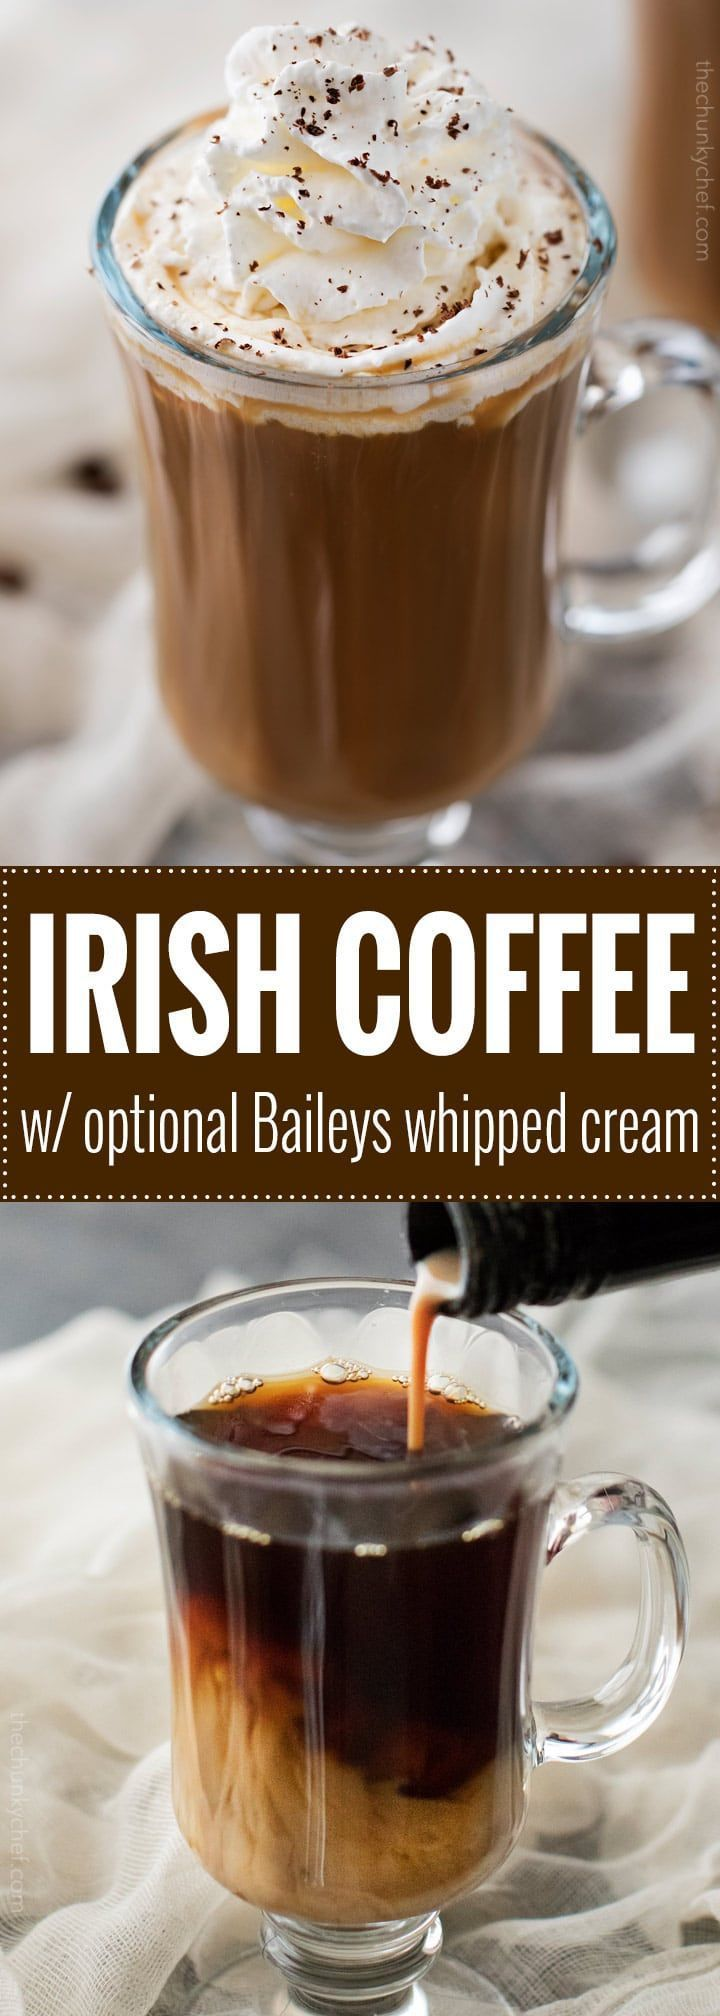 This Irish Coffee is made with black coffee, Irish whiskey, Baileys, brown sugar and heavy cream. Not 100% authentic, but 100% smooth and mouthwatering!   #coffee, #Irish, #StPatricksDay #irishcoffee #baileys #whiskey #boozycoffee #cocktailrecipes